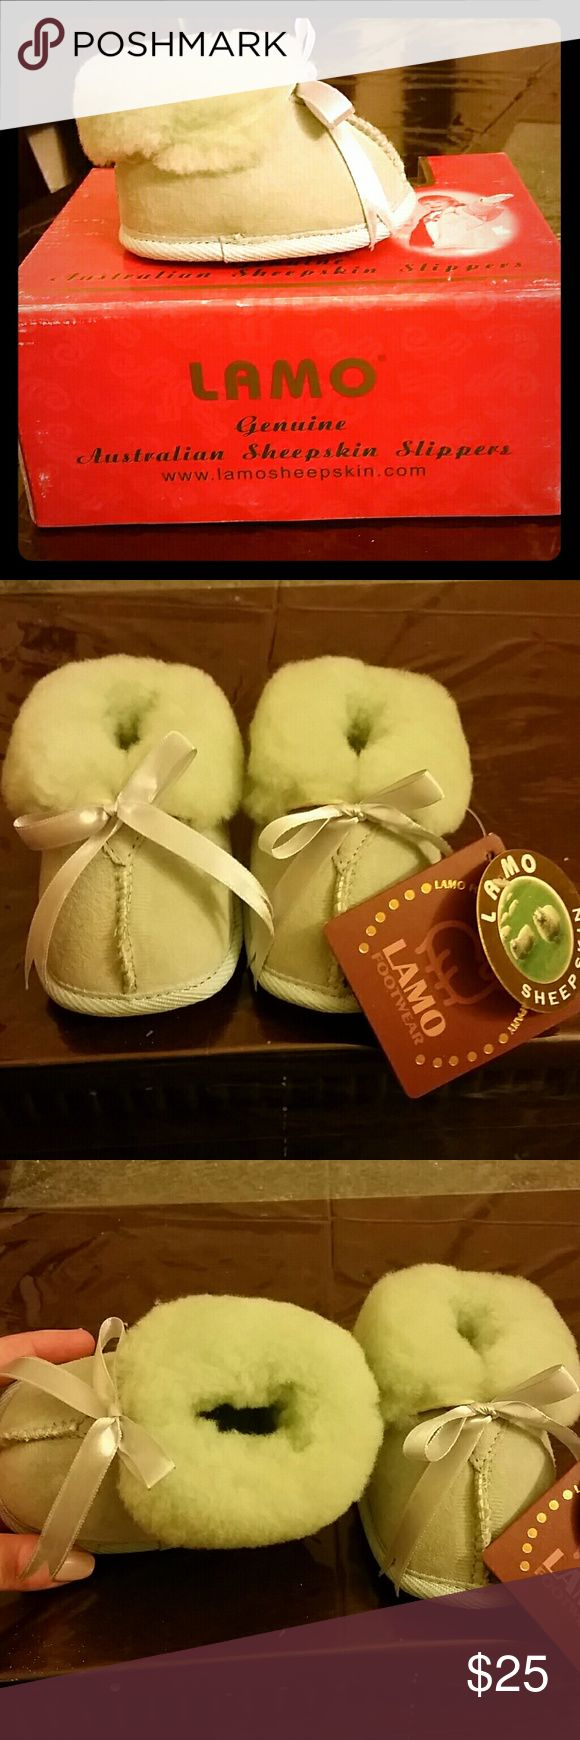 CLEARANCE Baby wool booties. Unisex Brand new size small baby booties made from Sheepskin.  Merino wool.  Warm and cozy for winter.  Very similar to uggs. Color is mint green.  Unisex will be good for both girls and boys  Size Small is 4 inch about size 3 infant.  Box is little faded due to shipping. The true color of the shoes are on the last pic Lamo Shoes Boots